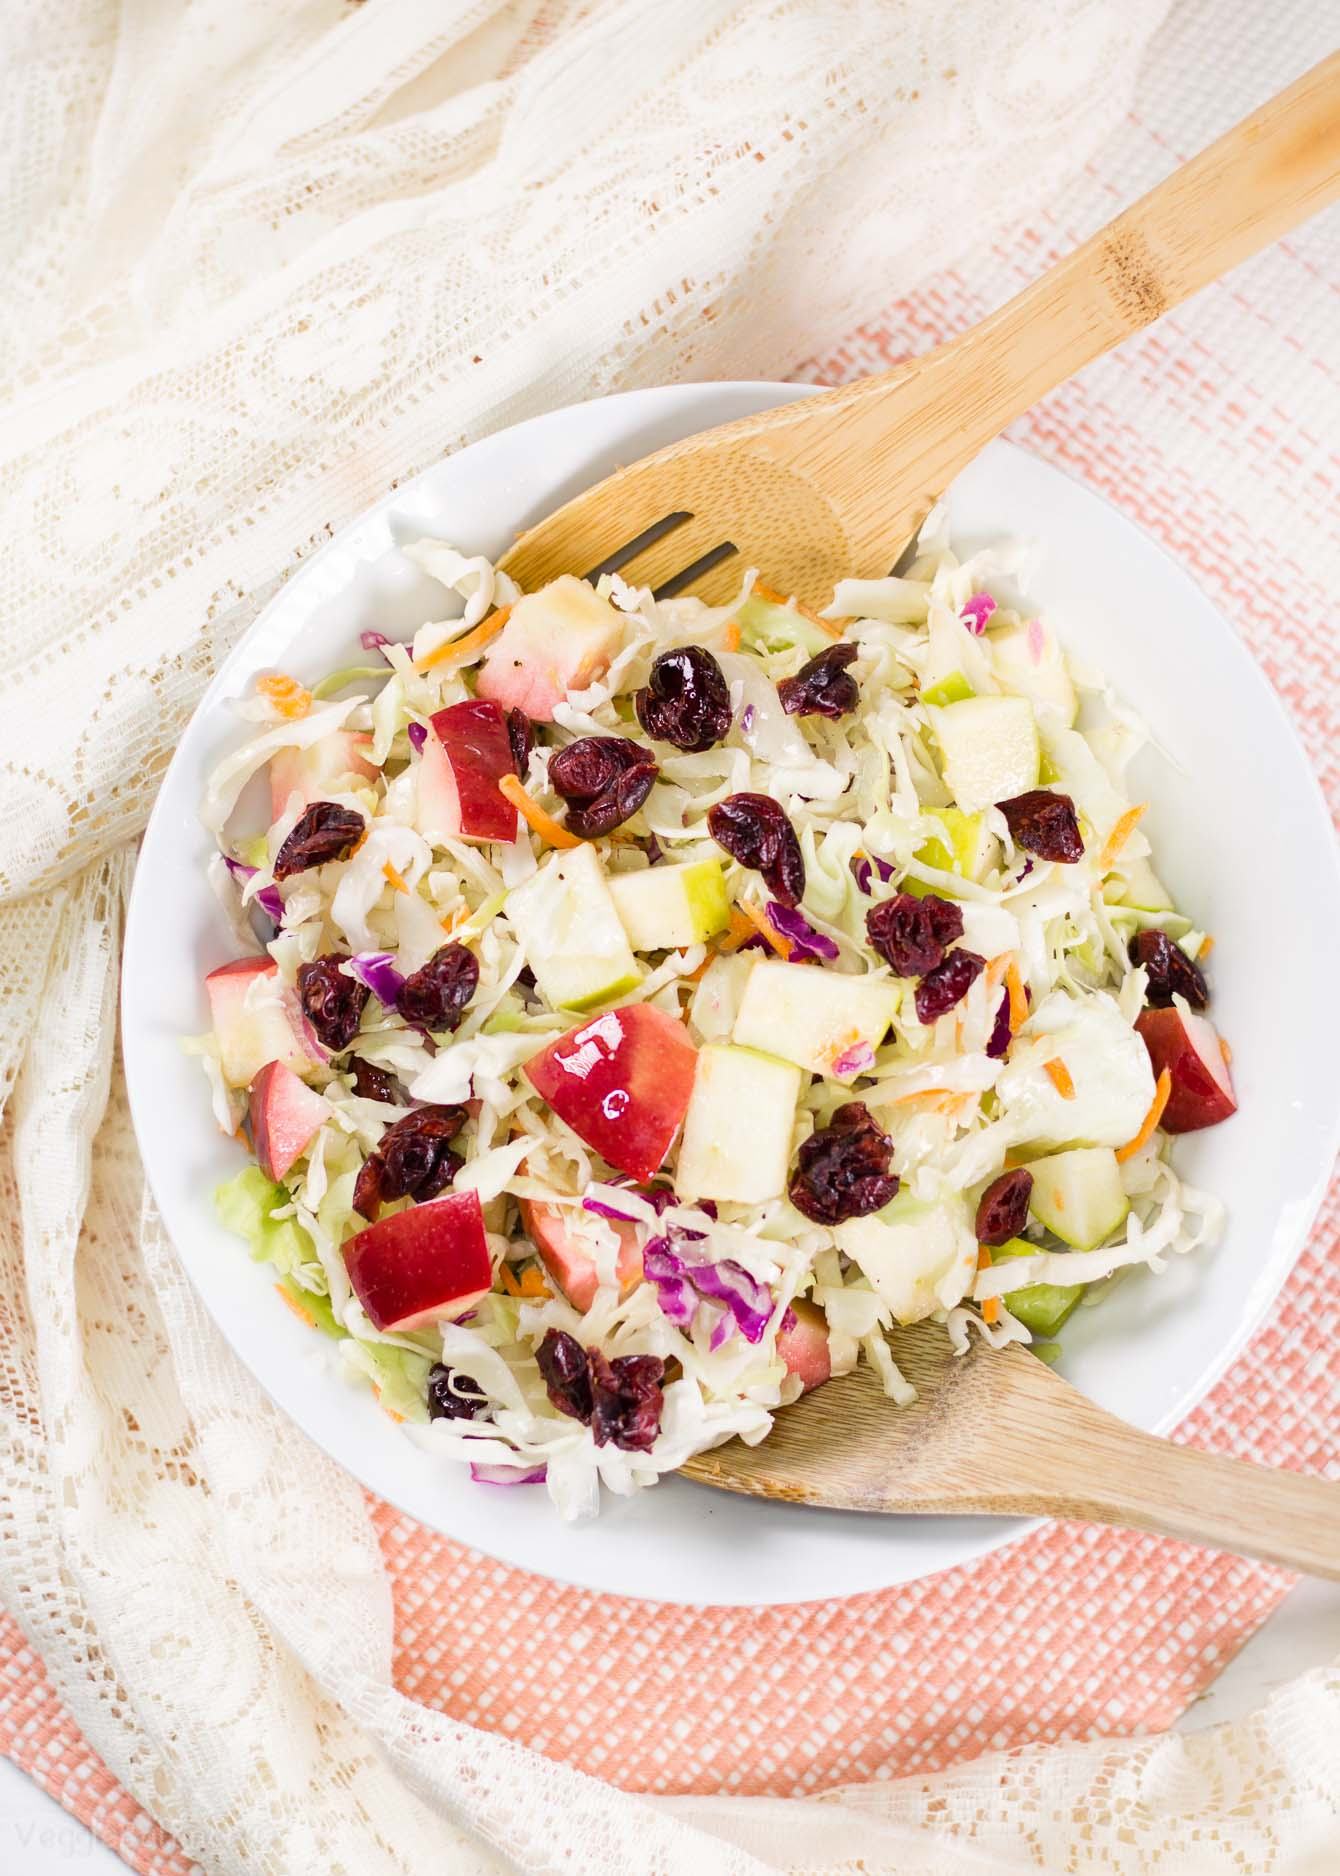 Apple Cranberry Almond Coleslaw Salad recipe